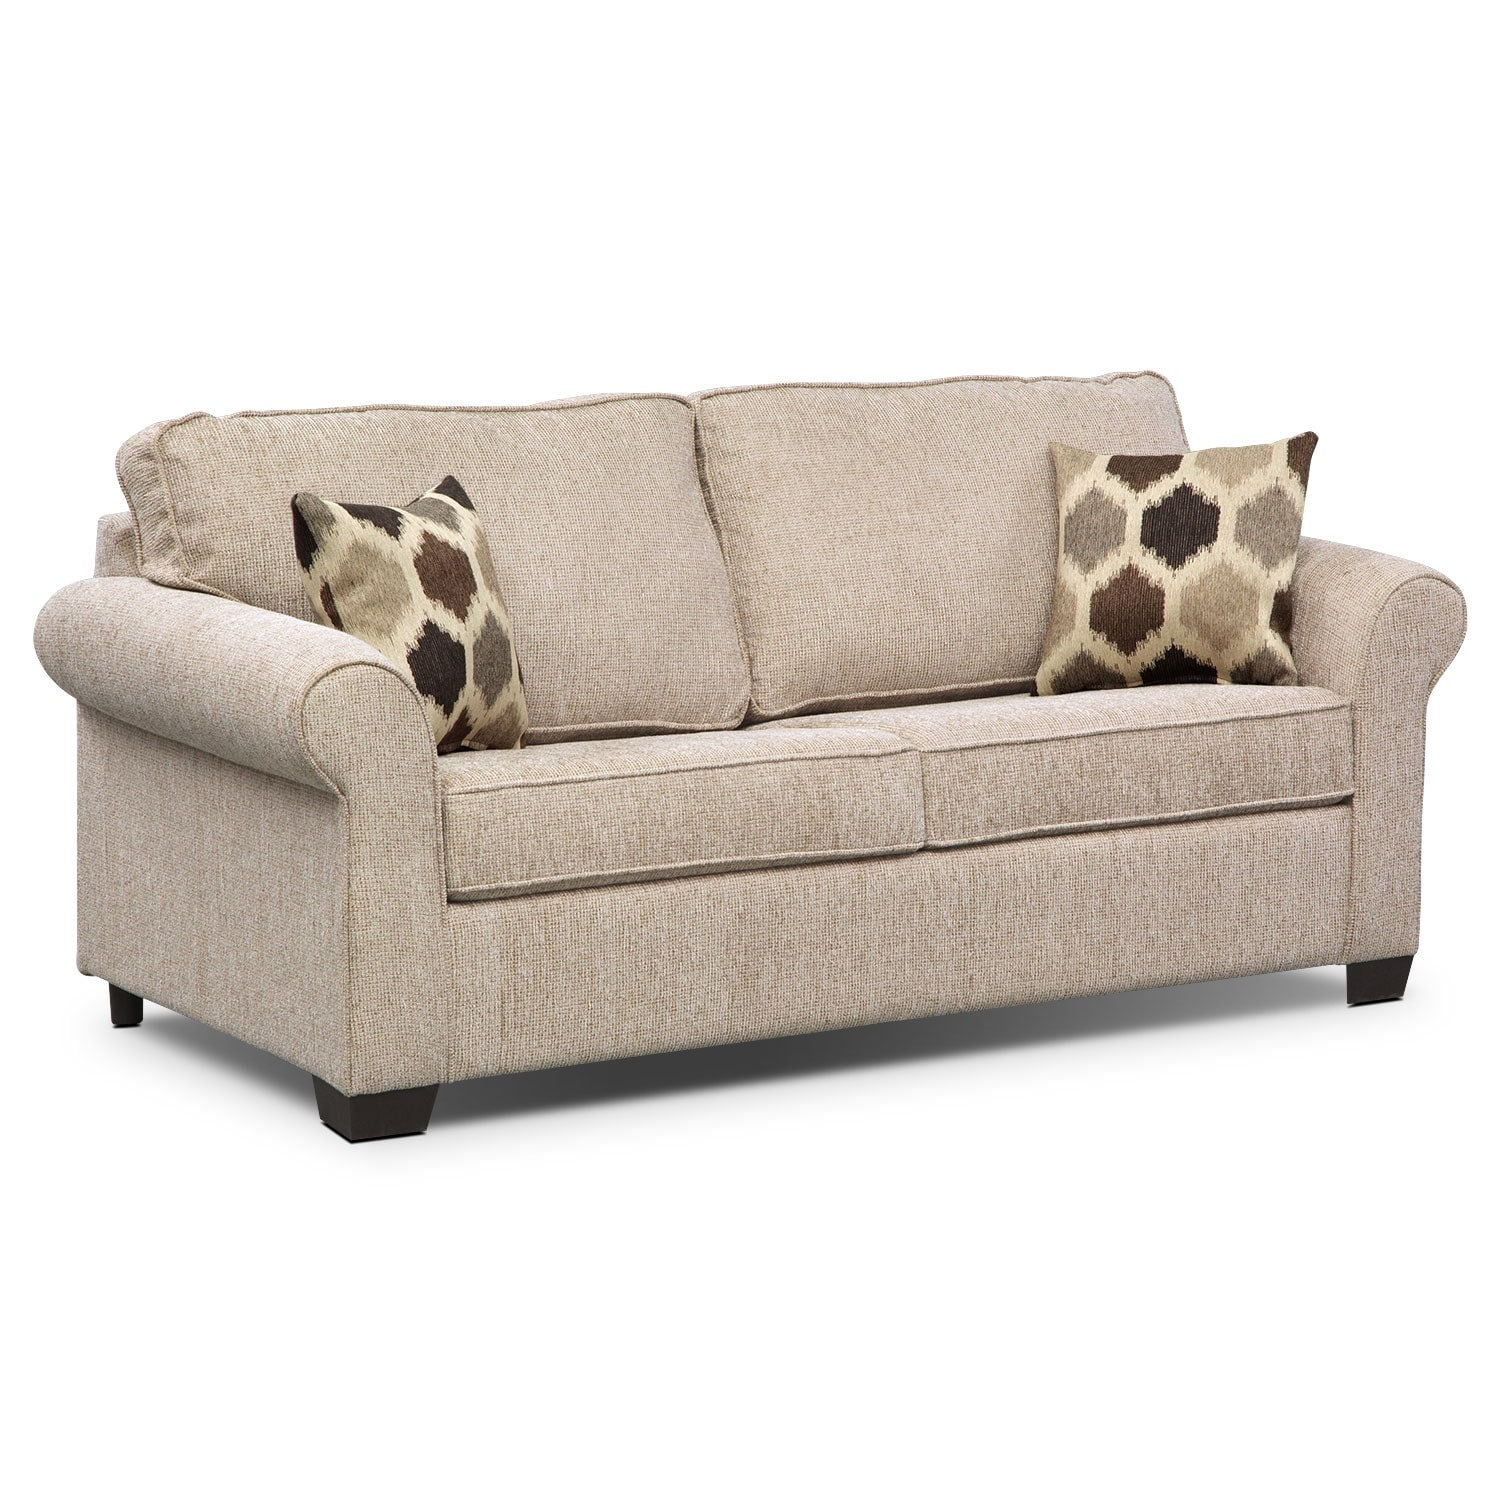 Fletcher Full Innerspring Sleeper Sofa - Beige - Sleeper Sofas Value City Value City Furniture